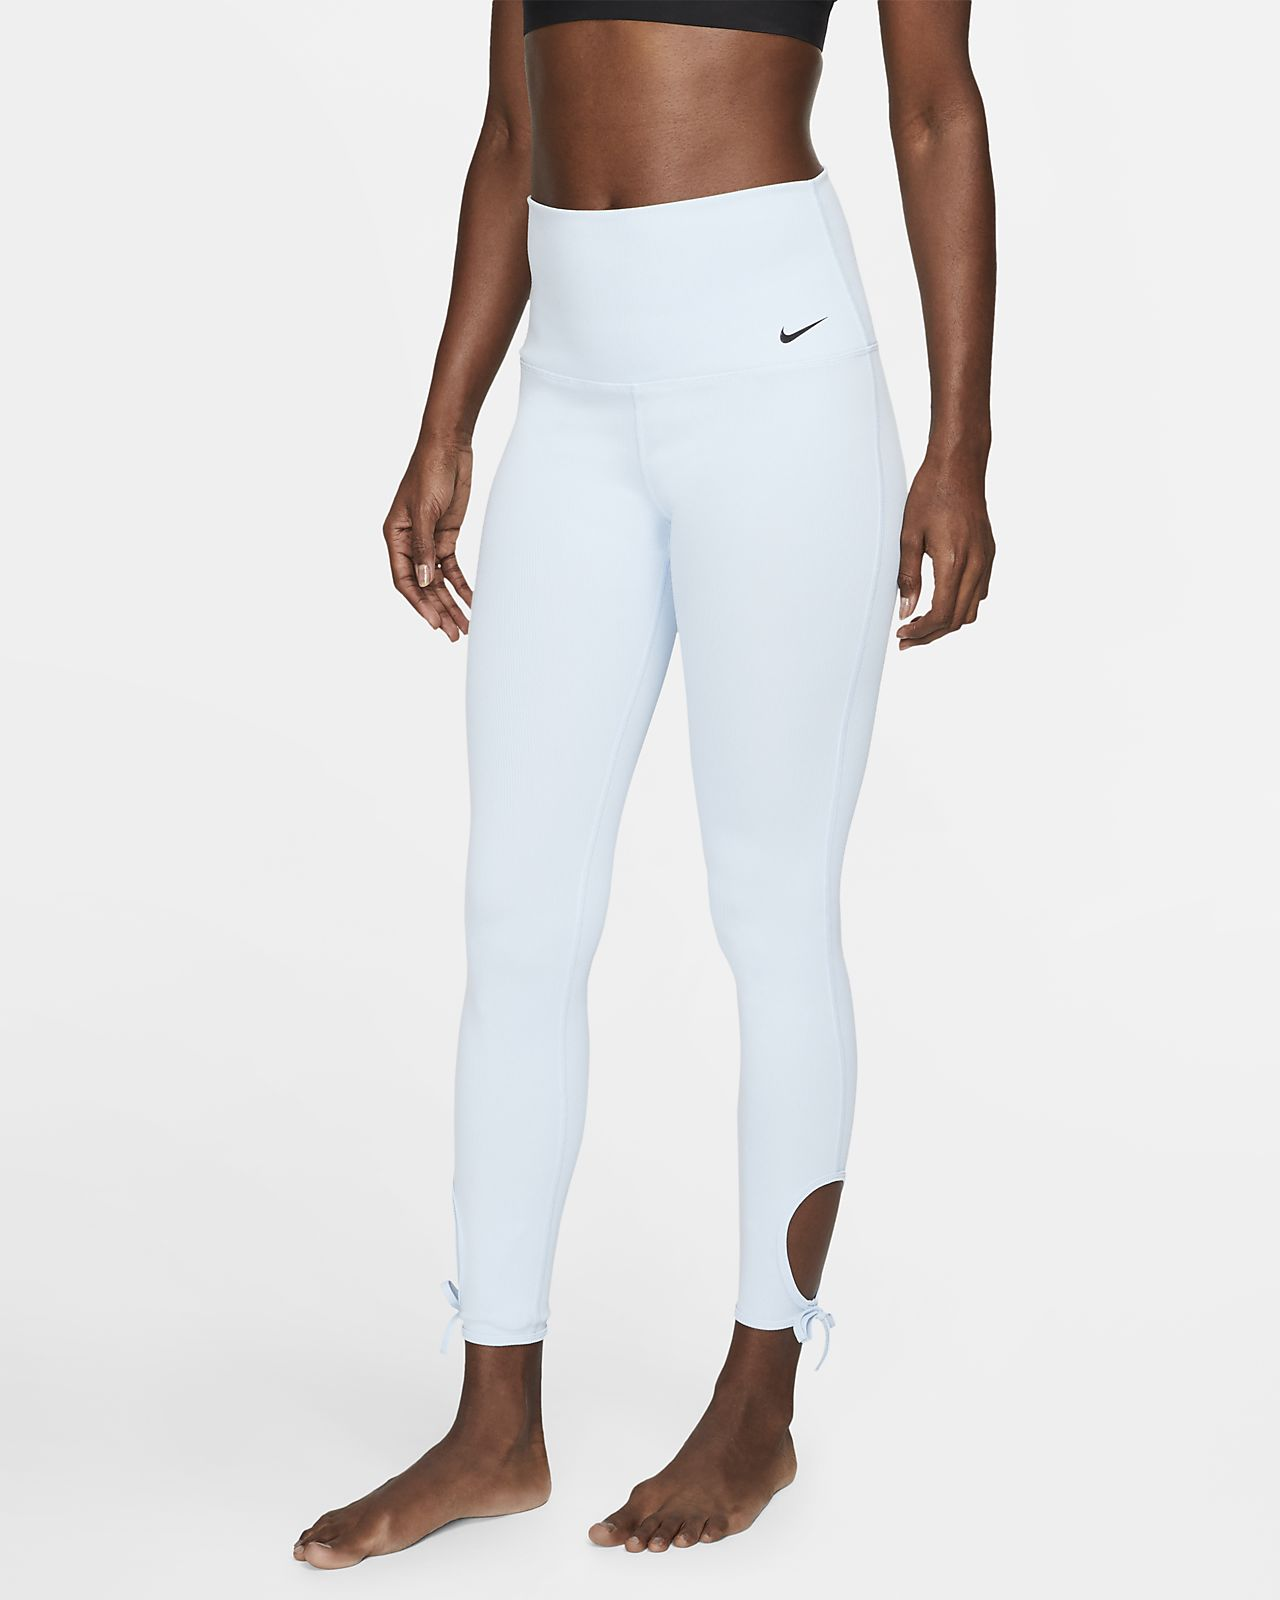 Nike Women's 7/8 Training Tights